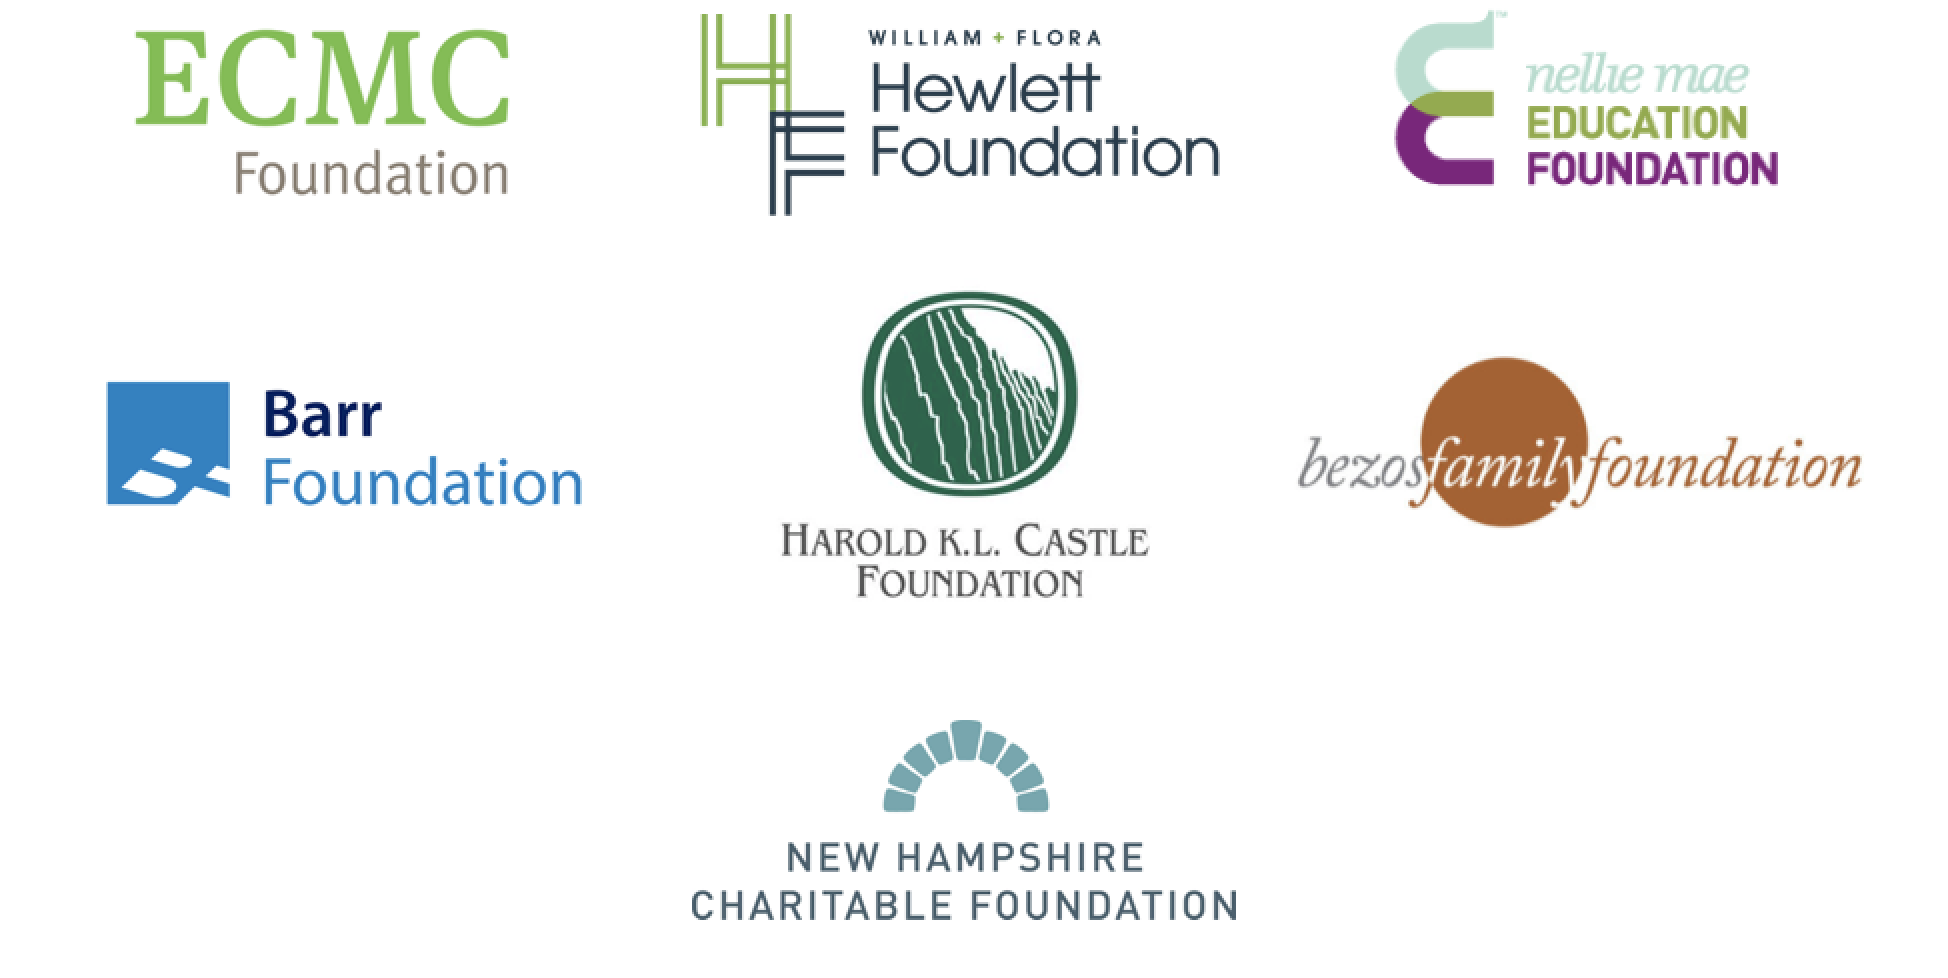 Partner Logos: ECMC Foundation, William + Flora Hewlett Foundation, Nellie Mae Education Foundation, Barr Foundation, Harold K.L. Castle Foundation, Bezos Family Foundation,  and New Hampshire Charity Foundation